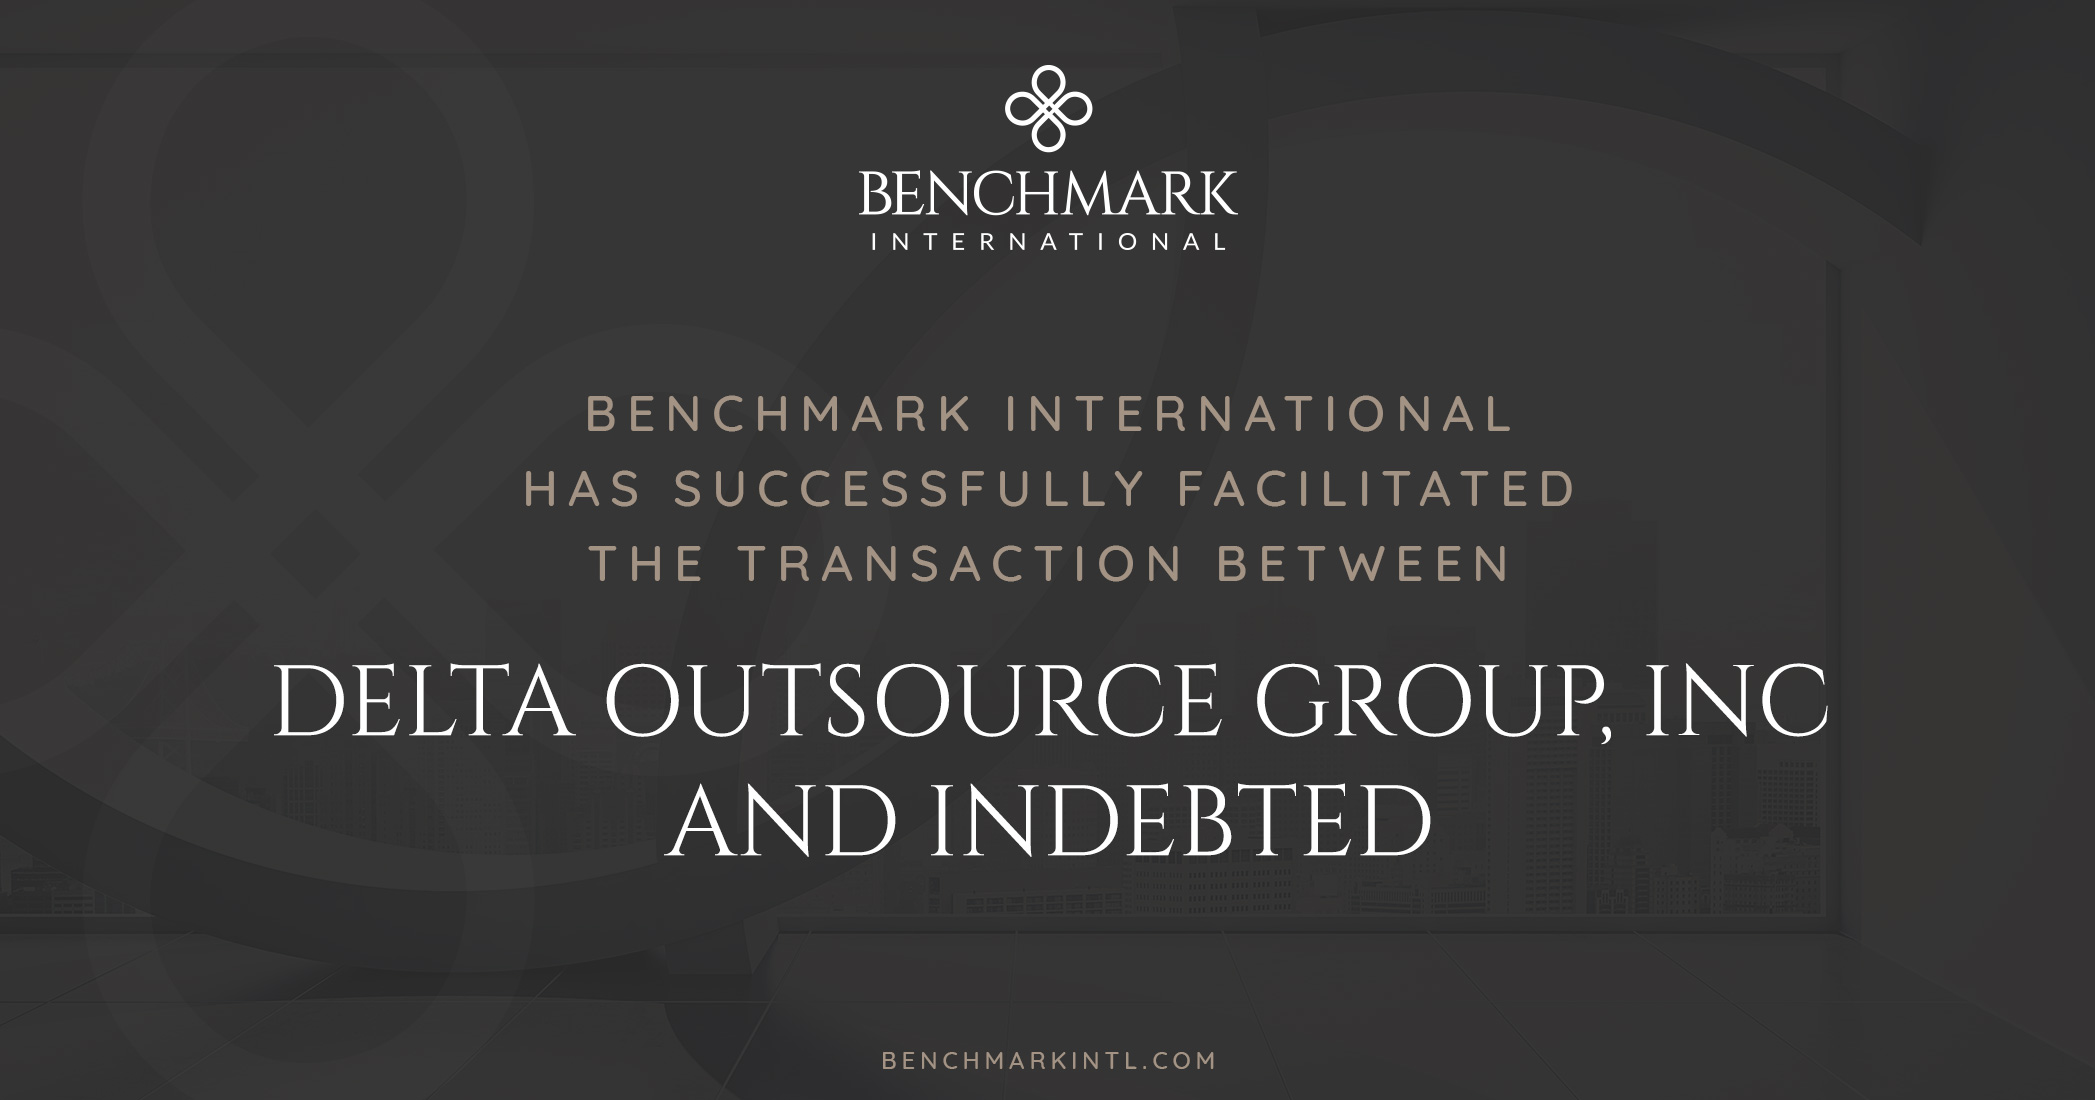 Benchmark International Successfully Facilitated the Transaction Between Delta Outsource Group, Inc and Indebted